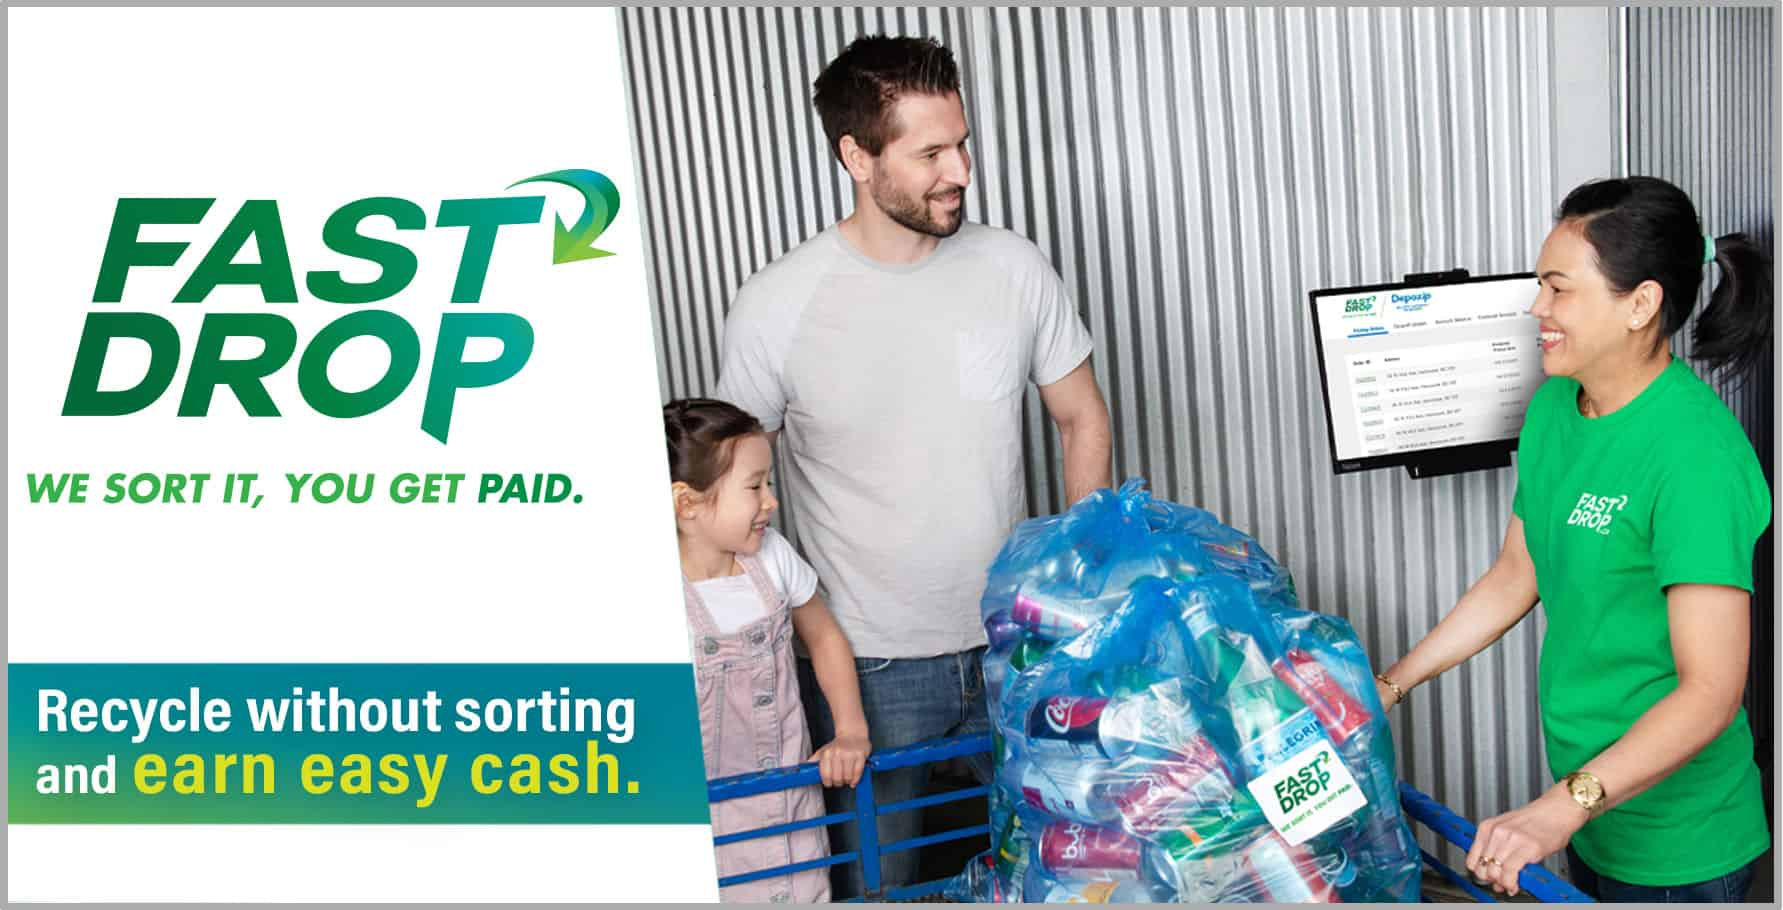 We offer a fast drop service for everyone who wants to recycle without sorting